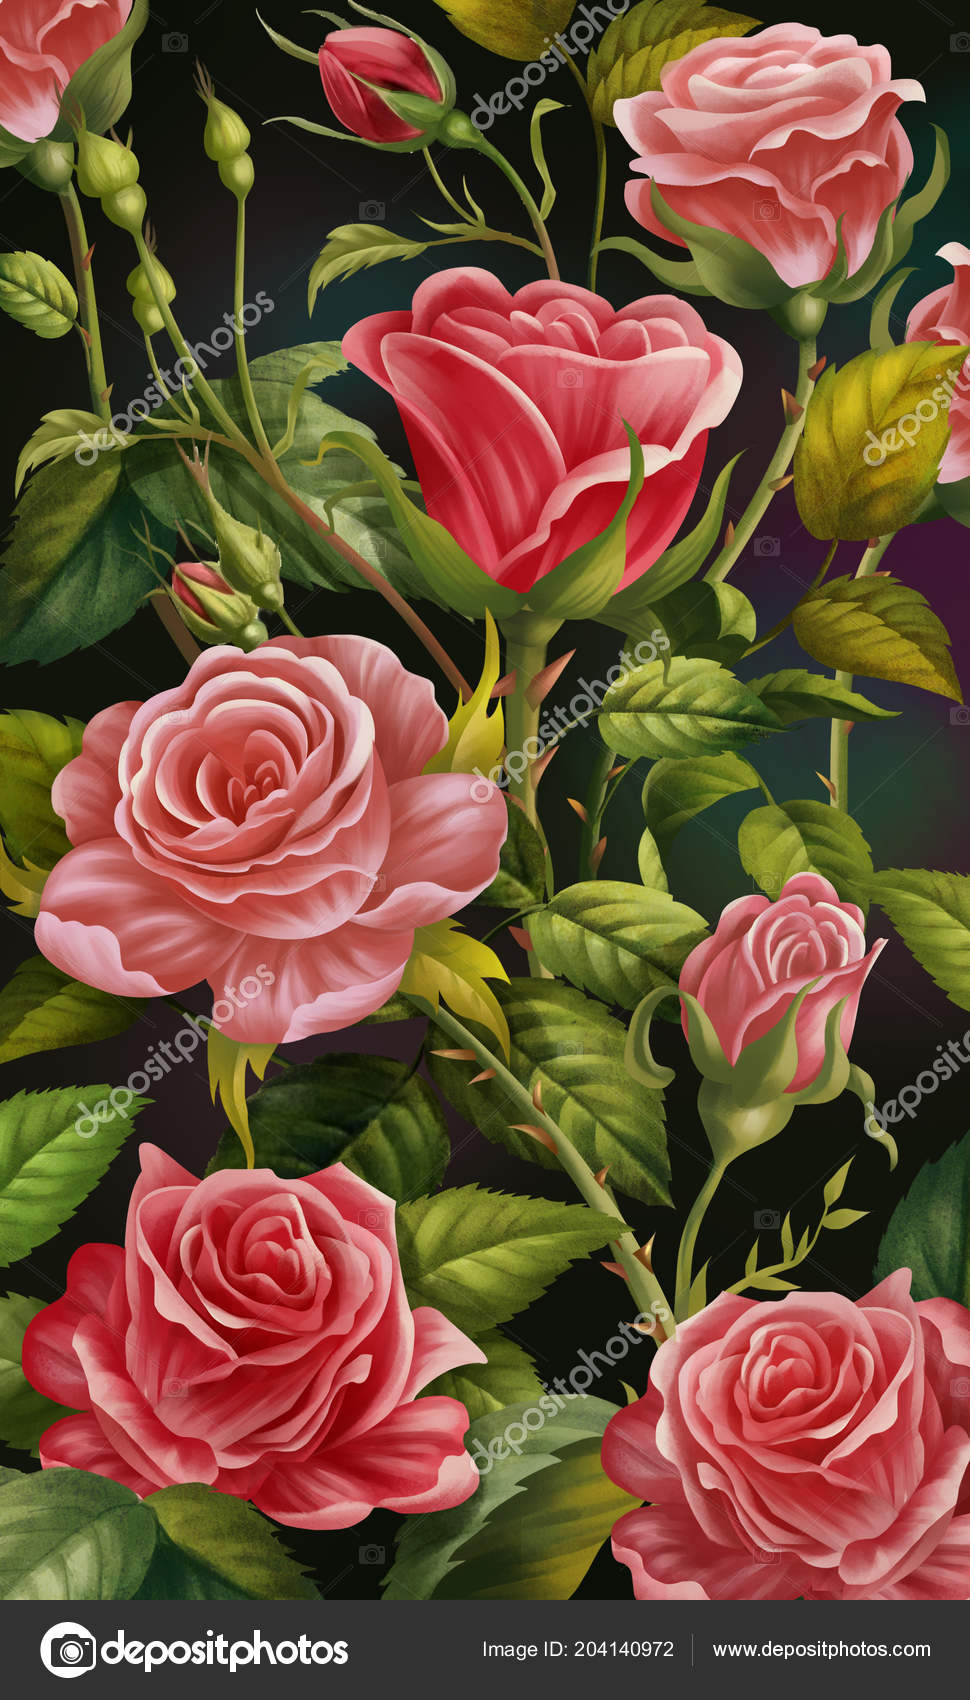 Wallpapers Roses Wallpaper For Phone Floral Background Colorful